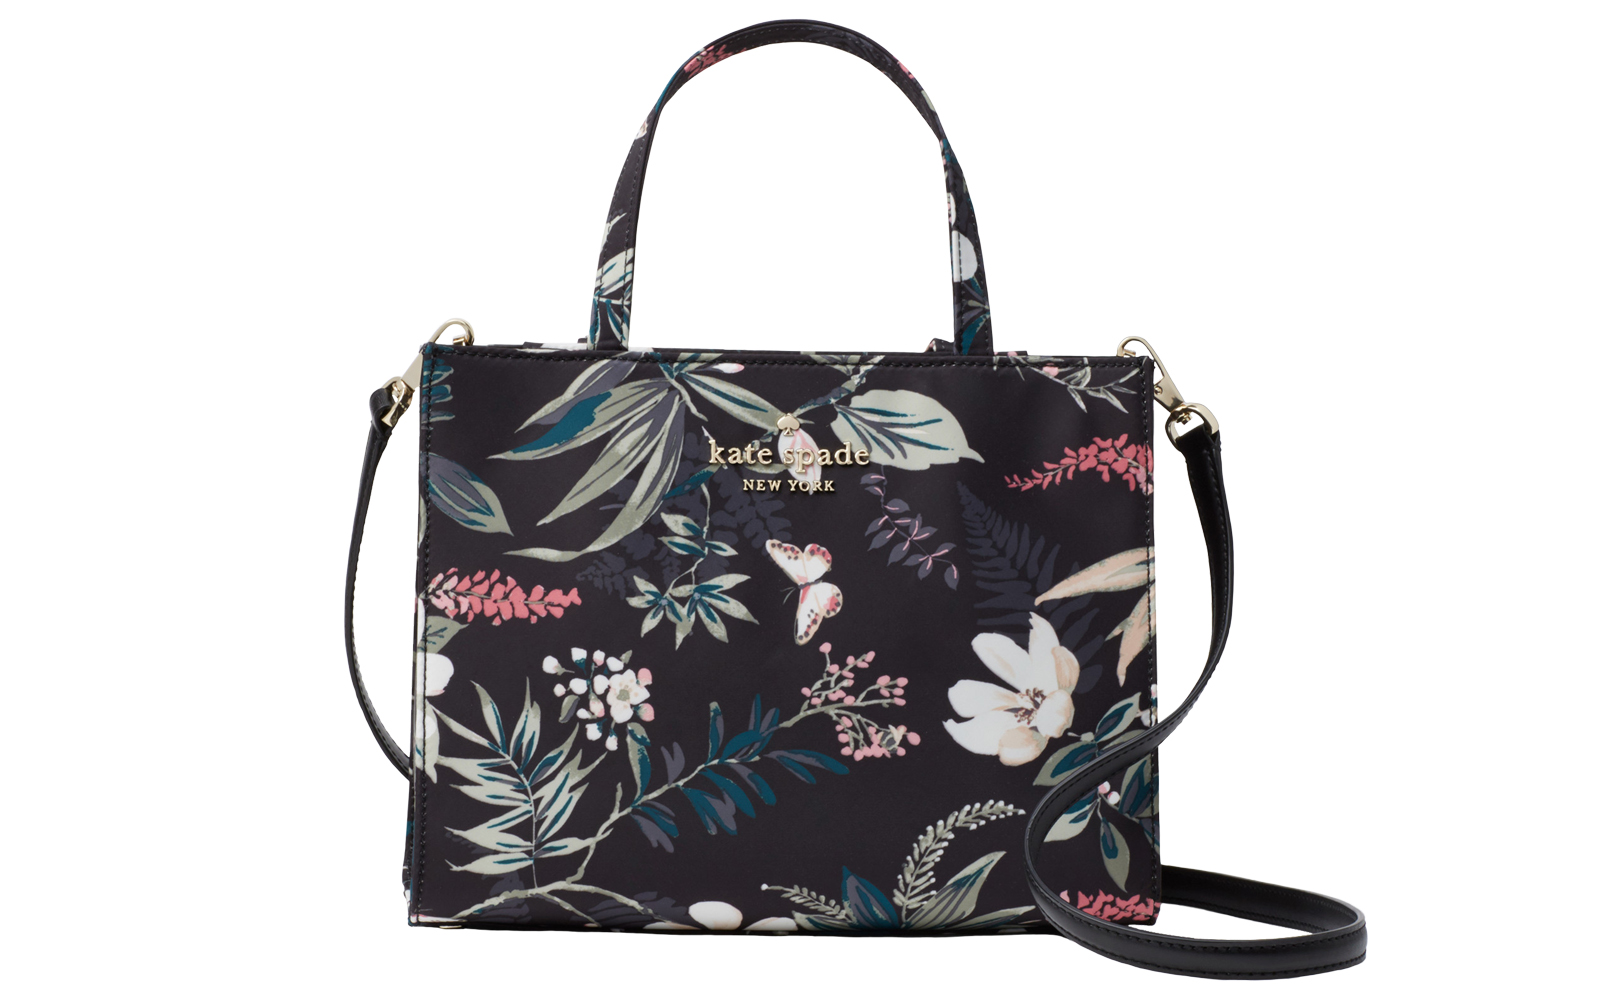 Kate Spade s Most Iconic  90s Bag Is Finally Back  059df0d47c92b